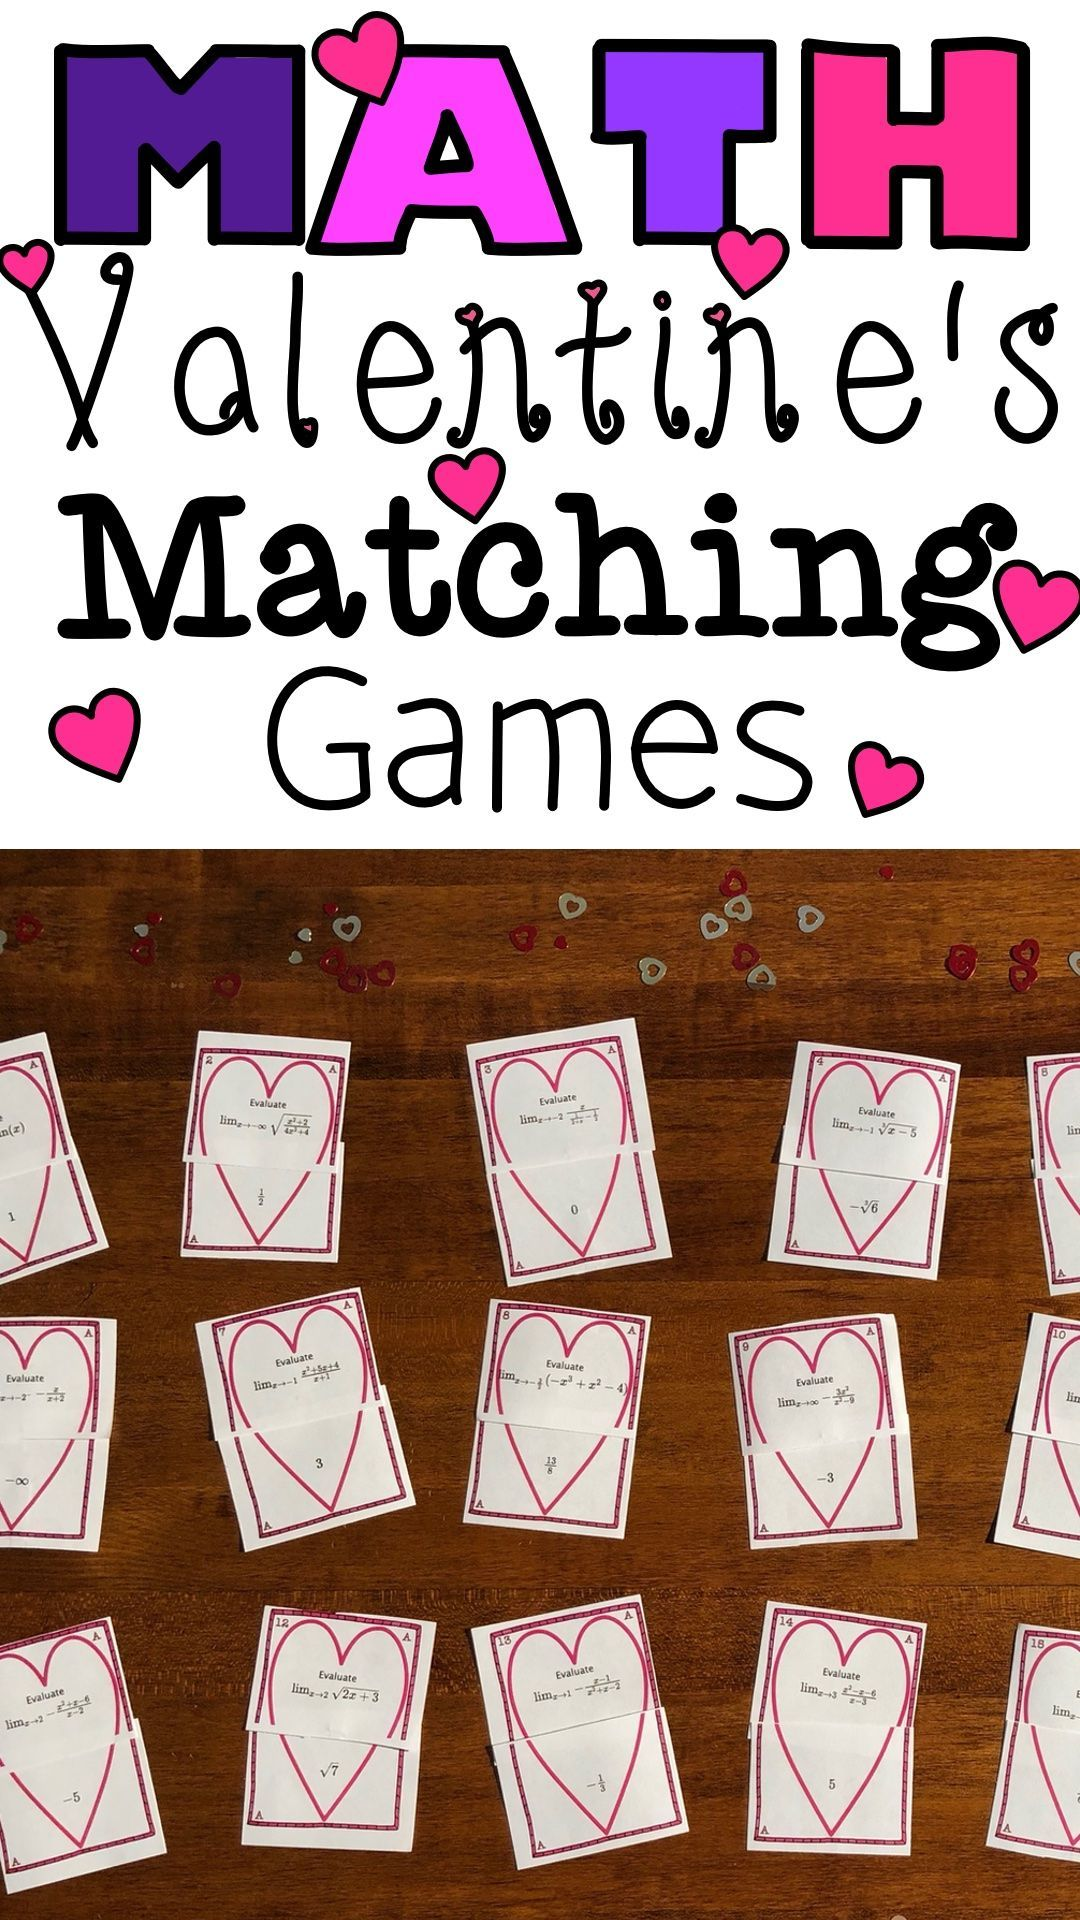 Math Matching Activities For Valentine S Day In